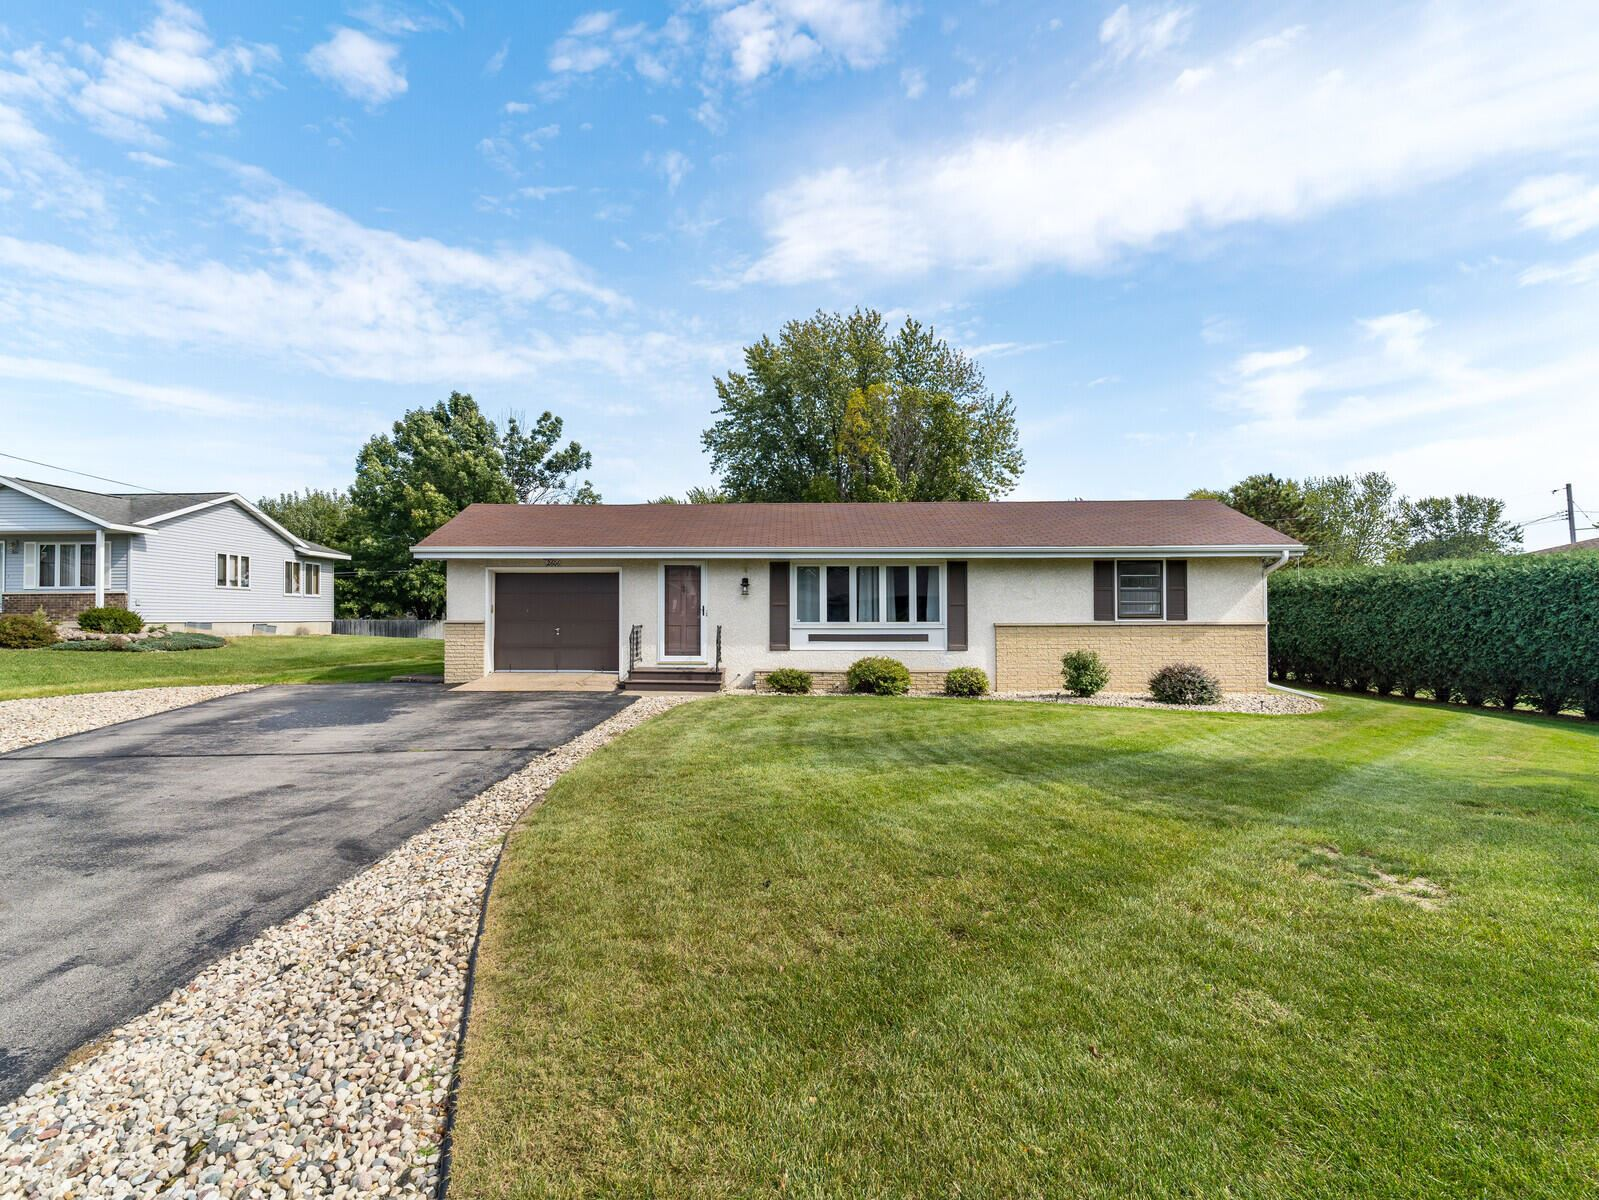 2606 Lakeshore Dr, Campbell, WI 54603 - MLS#: 1765274